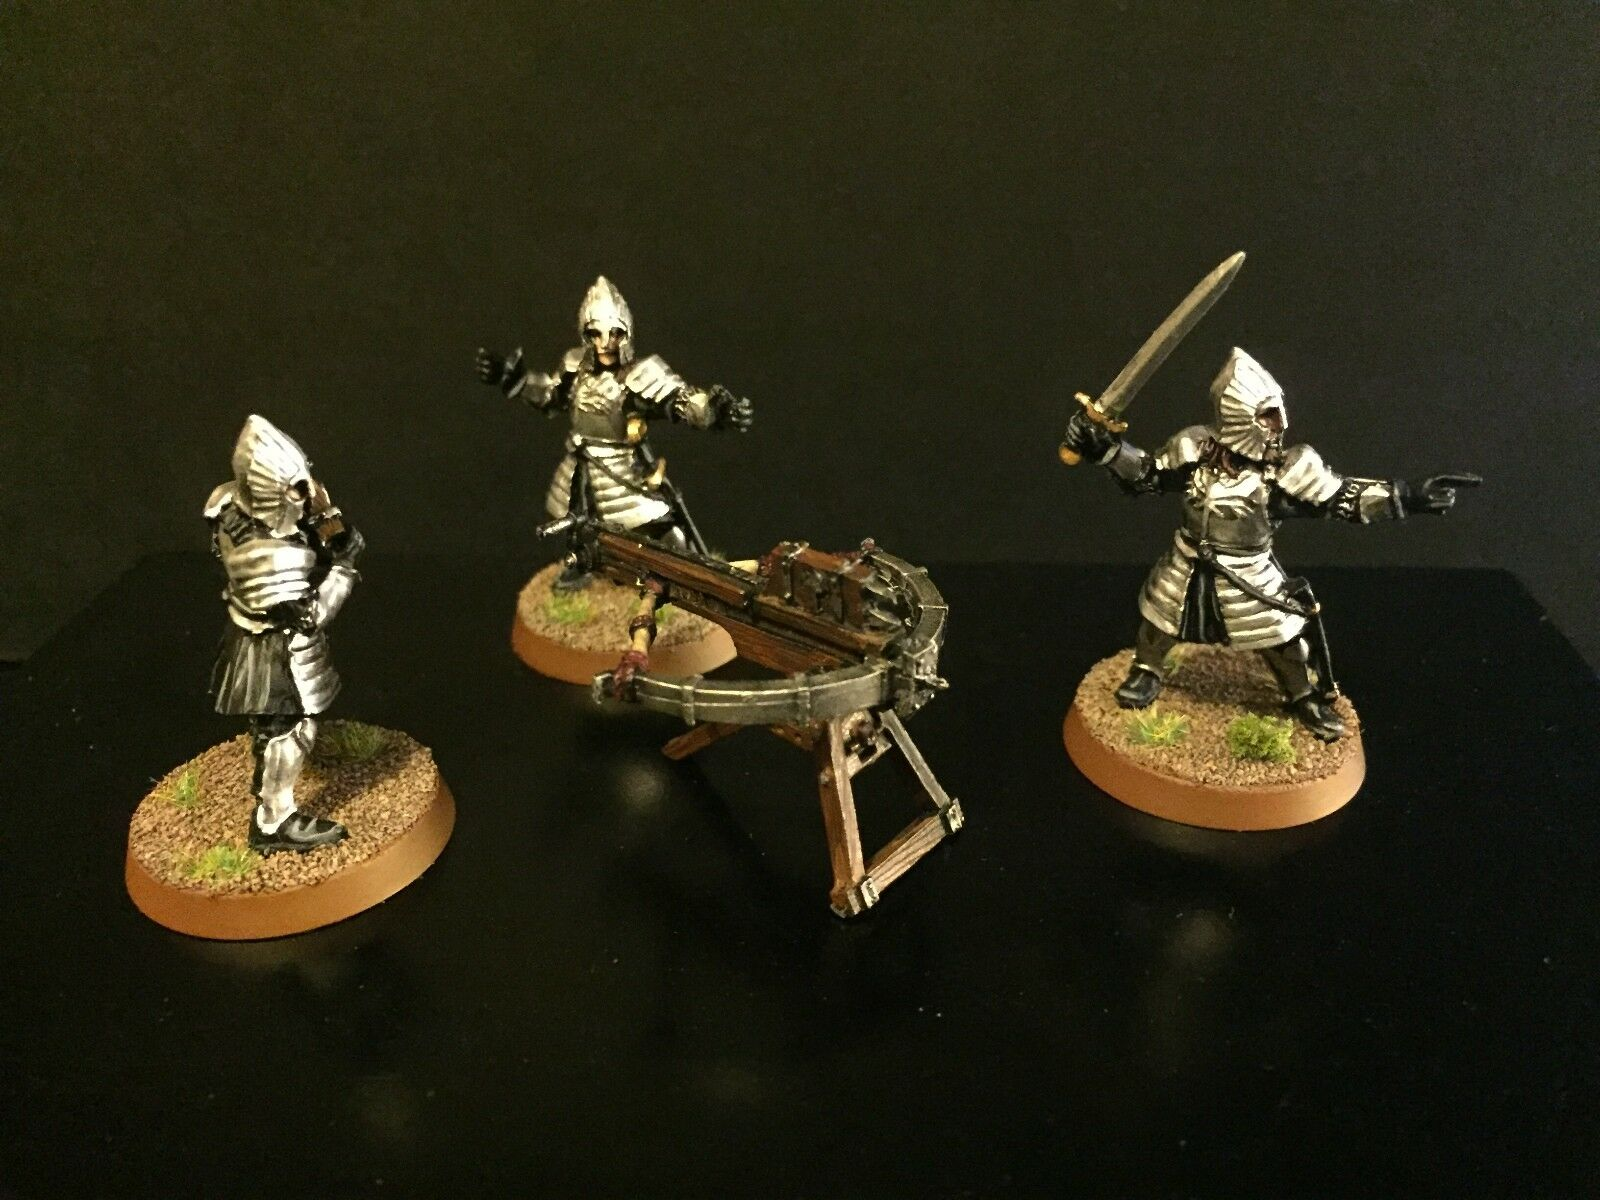 Lord of the rings warriors of minas tirith (bolt thrower)